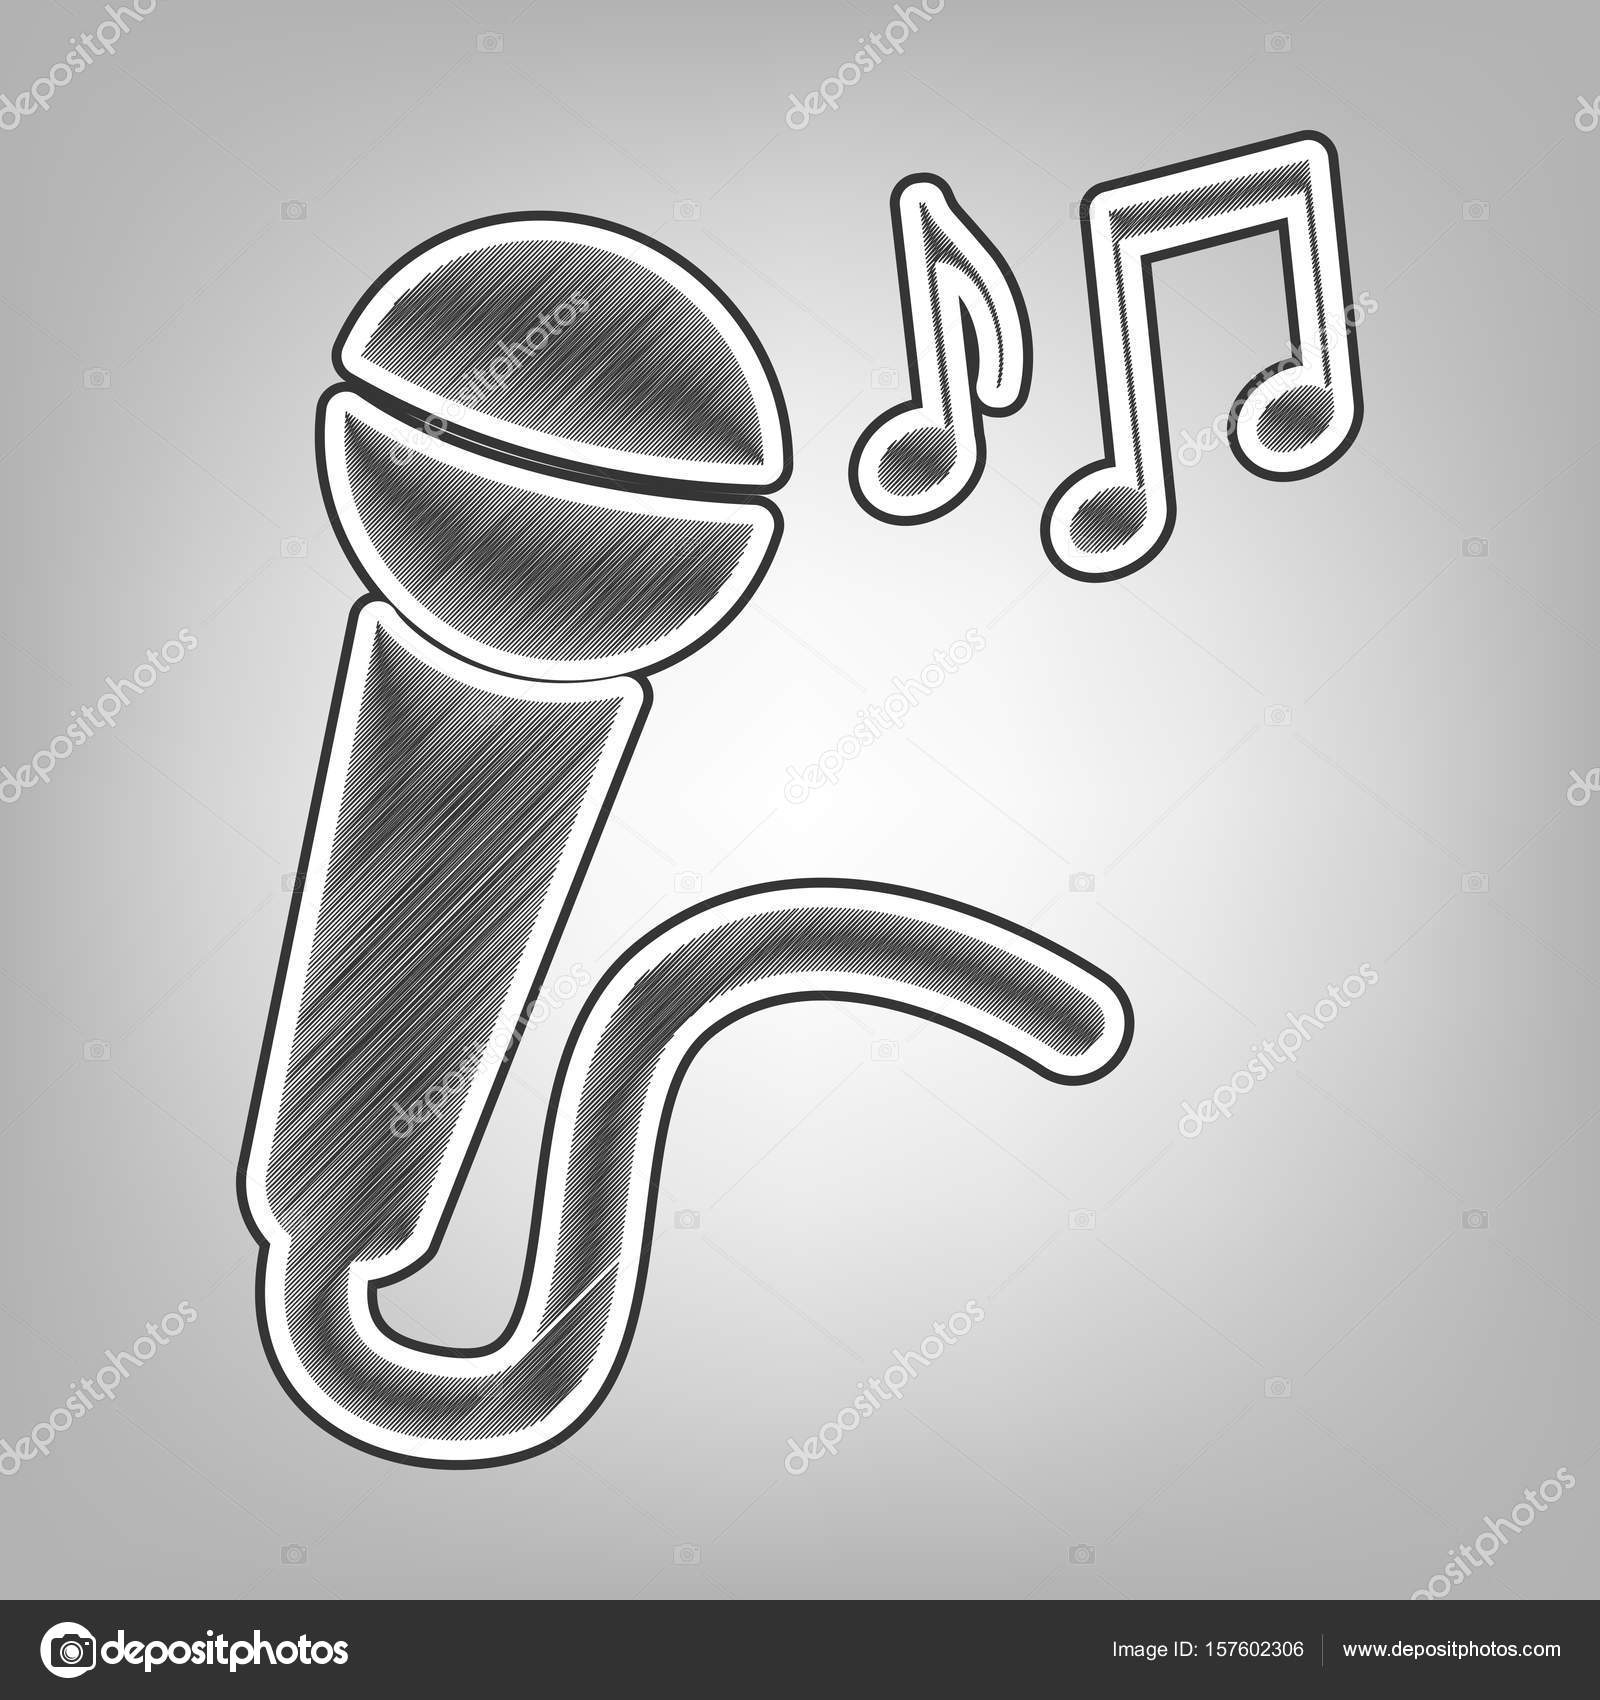 microphone sign with music notes vector pencil sketch imitation